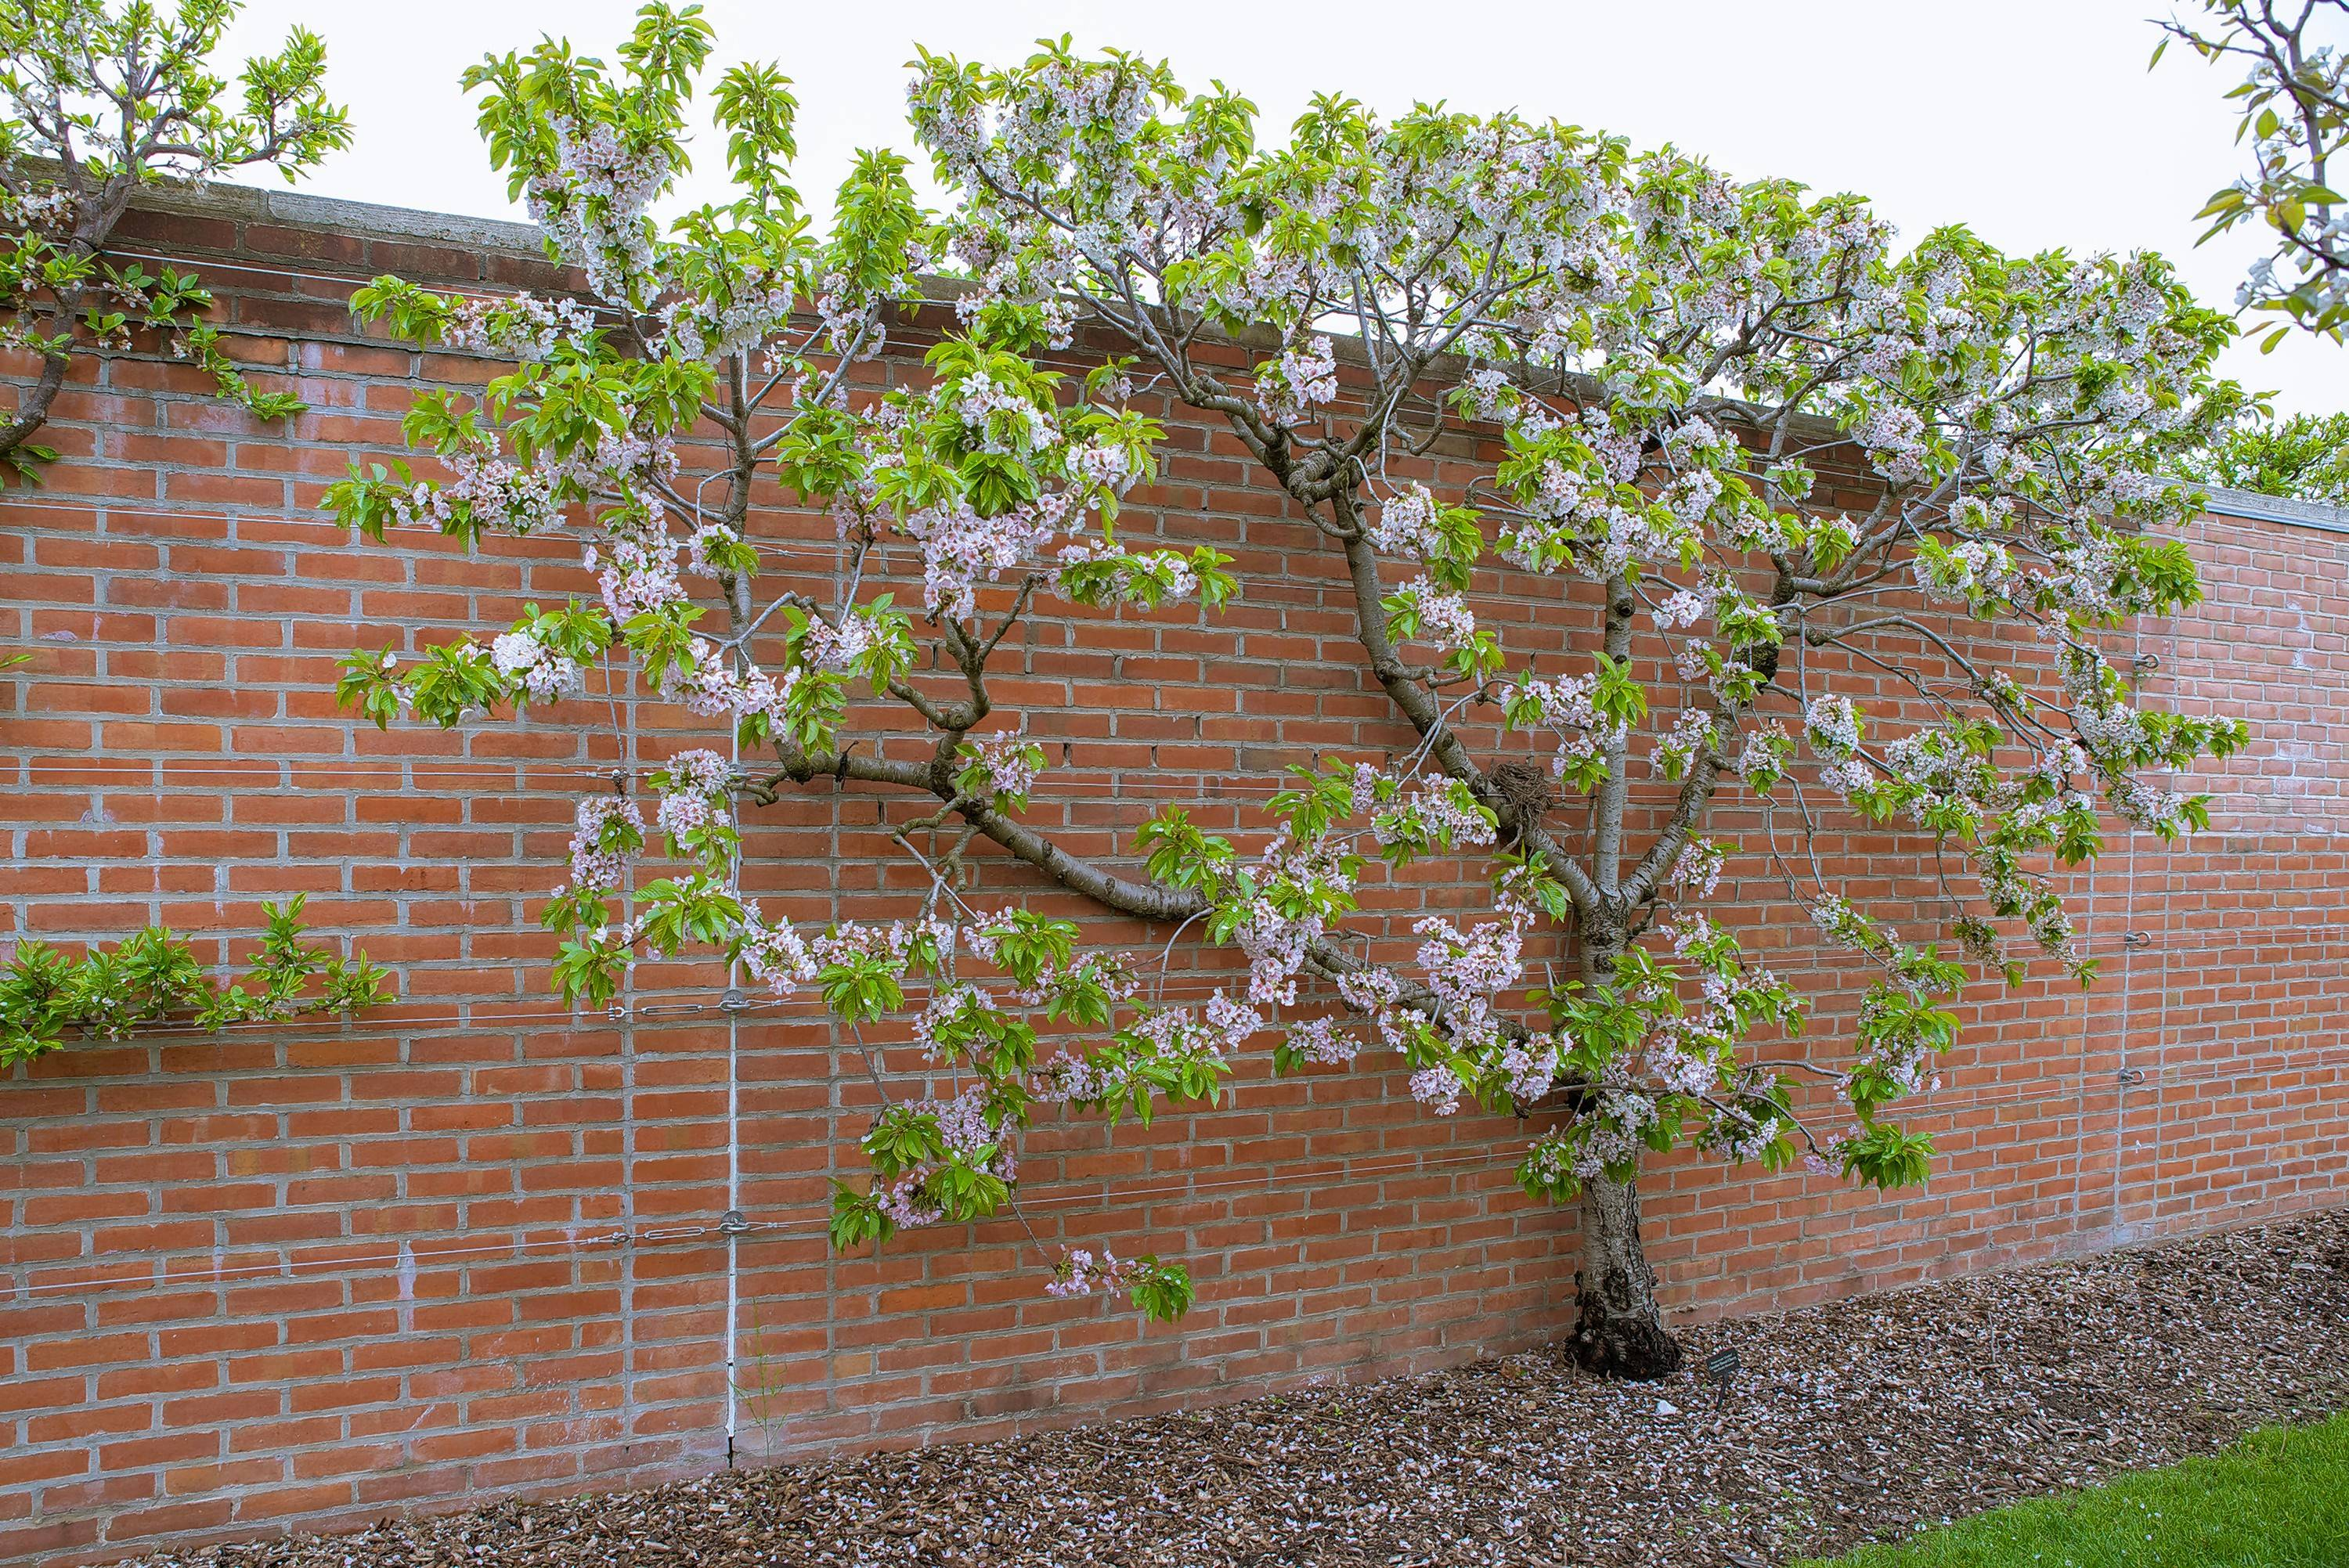 To train an espalier plant, twigs and branches are bent to meet design requirements when they are young and supple.